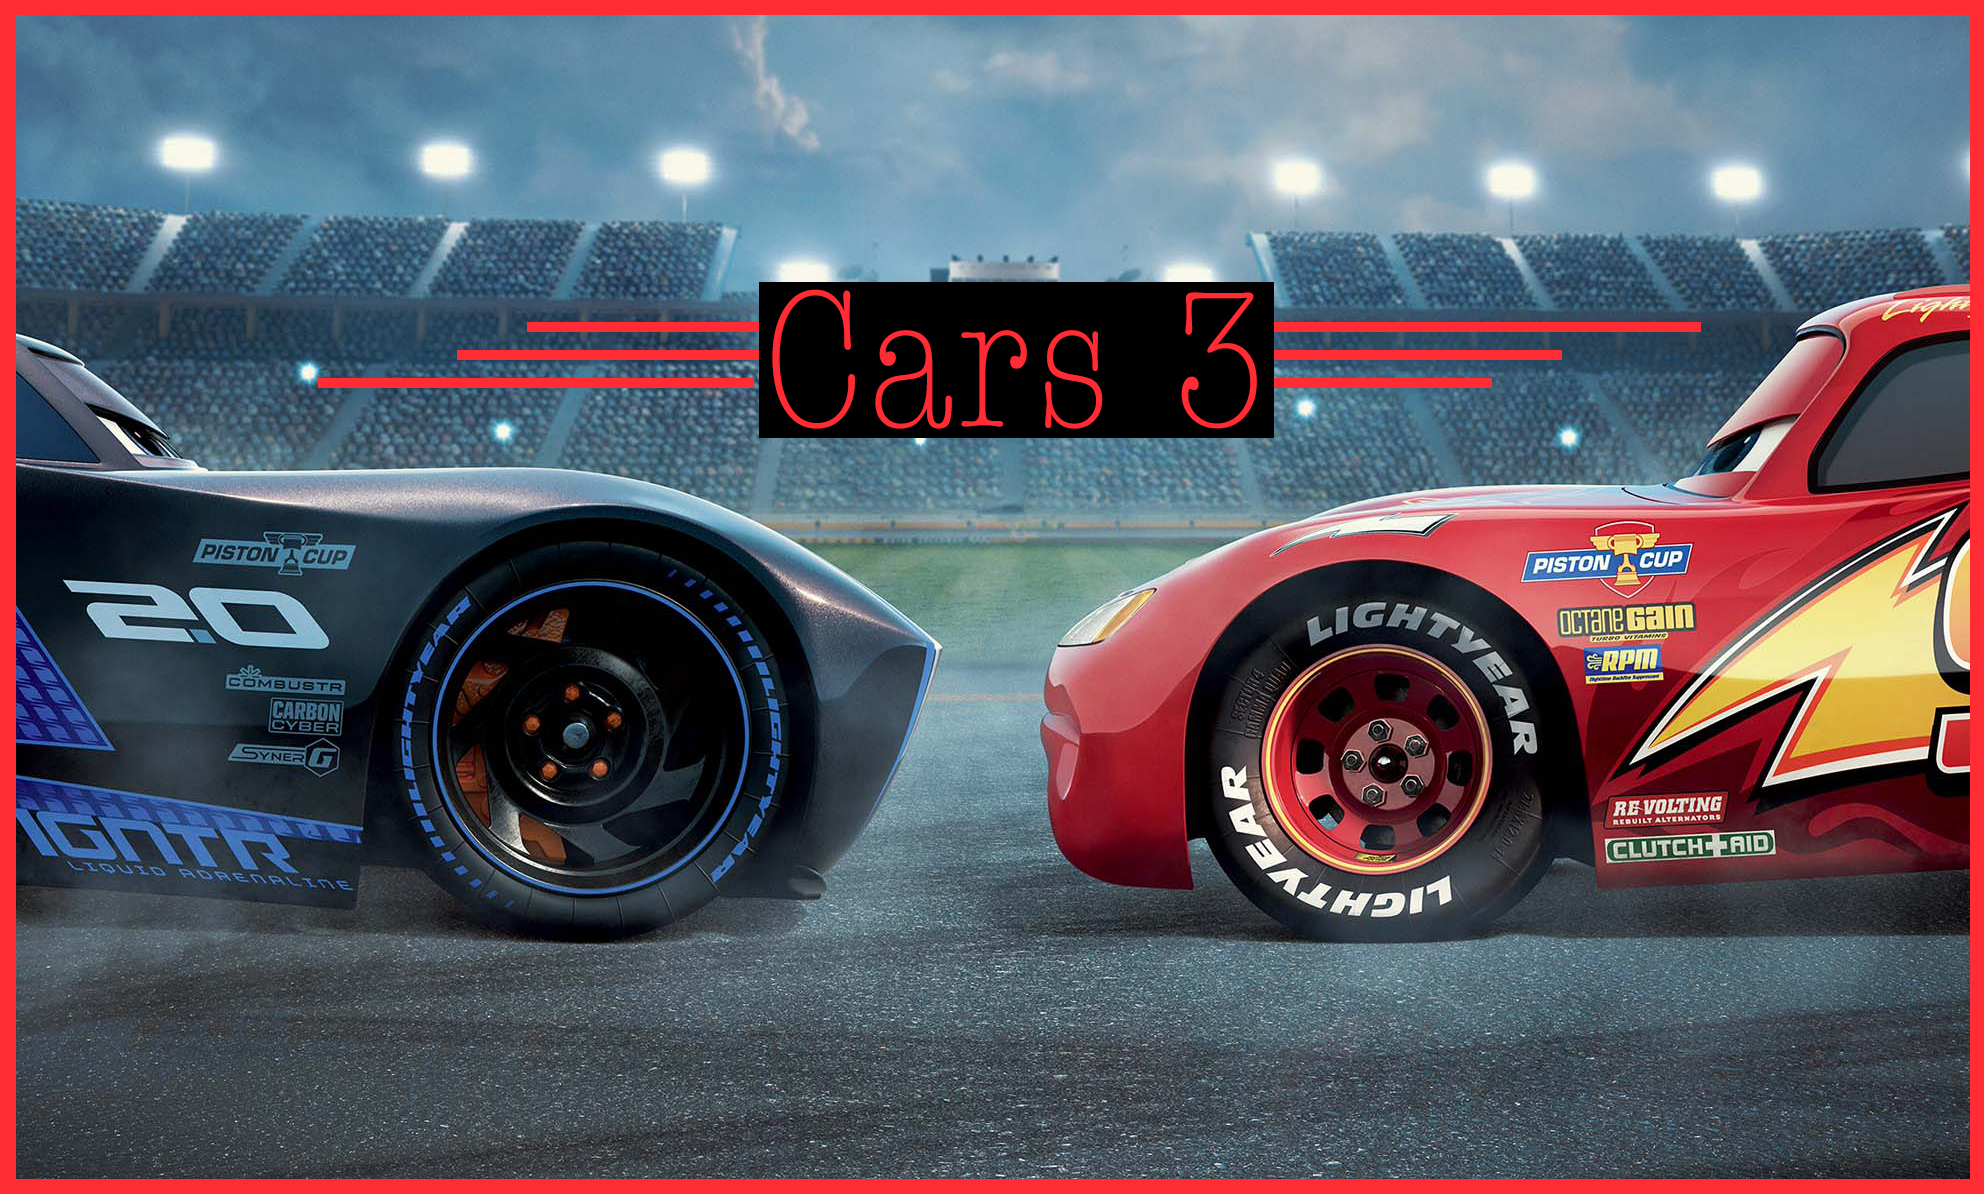 Cars 3 An Animation Movie About Feminism And Courage The Italian Reve